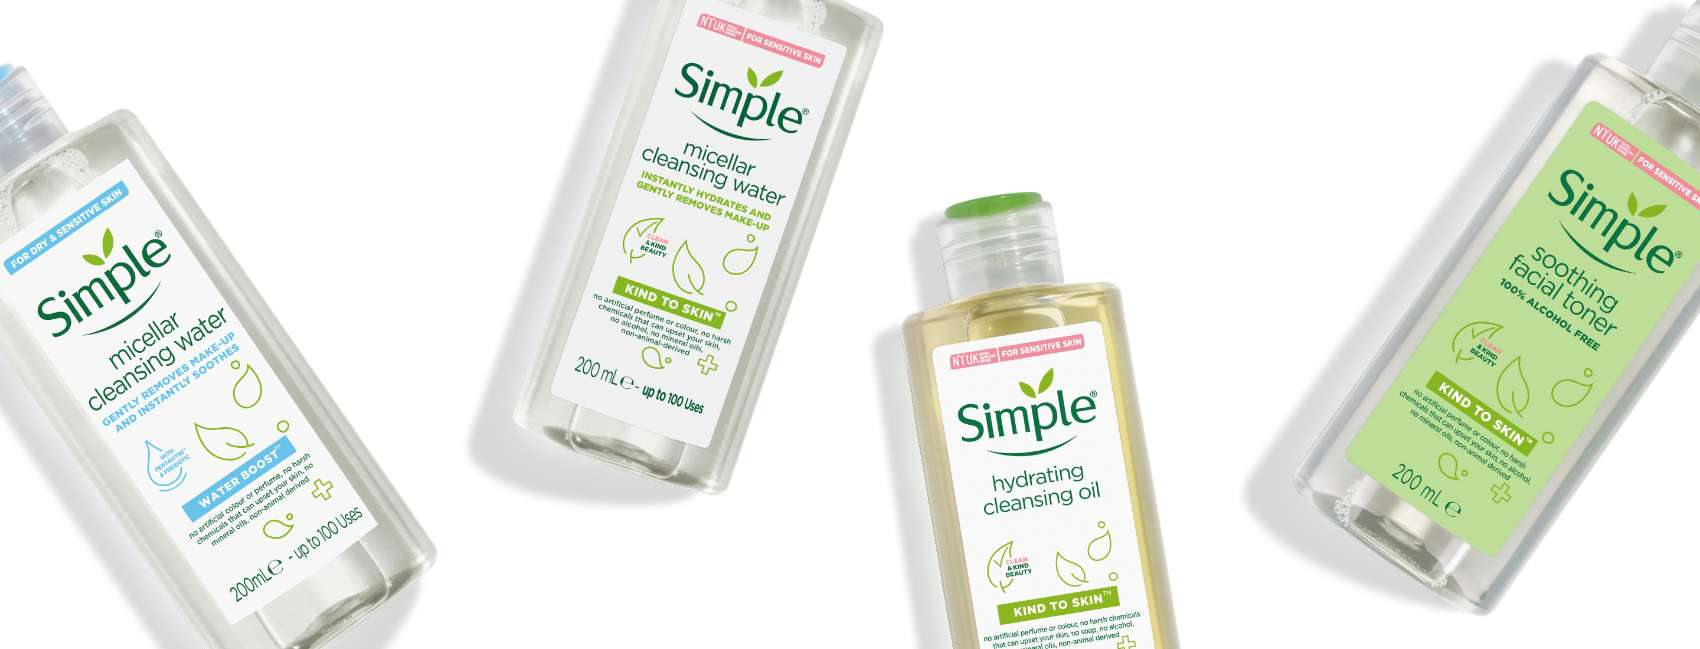 Simple face cleansers and toners BANNER